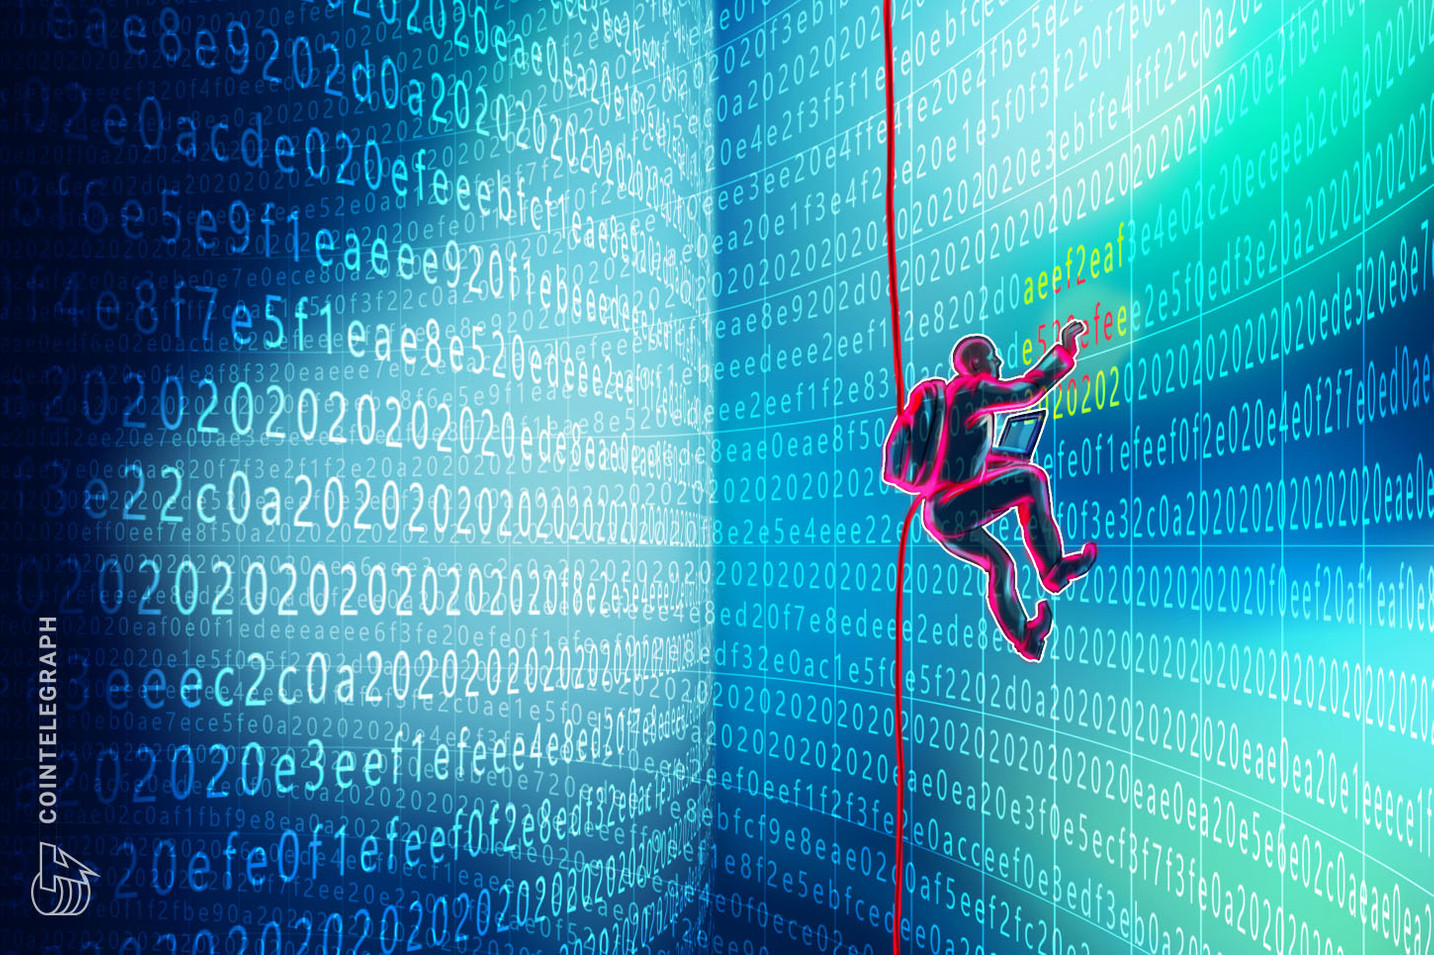 Japan: Cybersecurity Experts Claim to Have Made Progress in Tracking Zaif Exchange Hackers